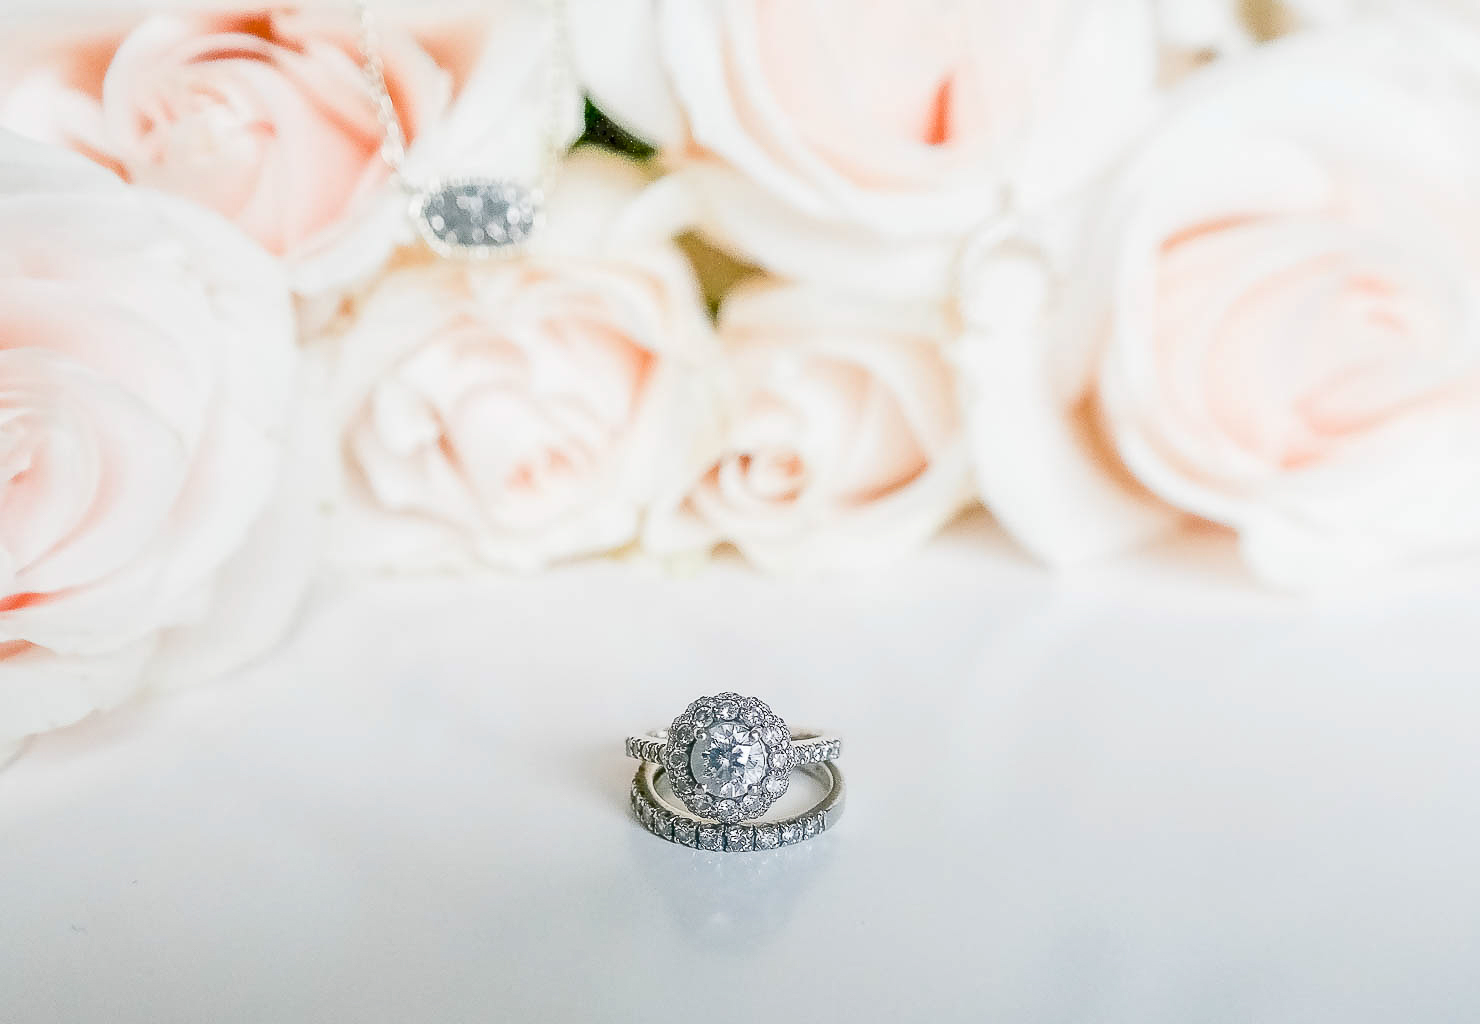 what to look for when selecting a jeweler, michael hill jewelers the perfect engagement ring how to select an engagement ring stone, love affair with my engagement ring